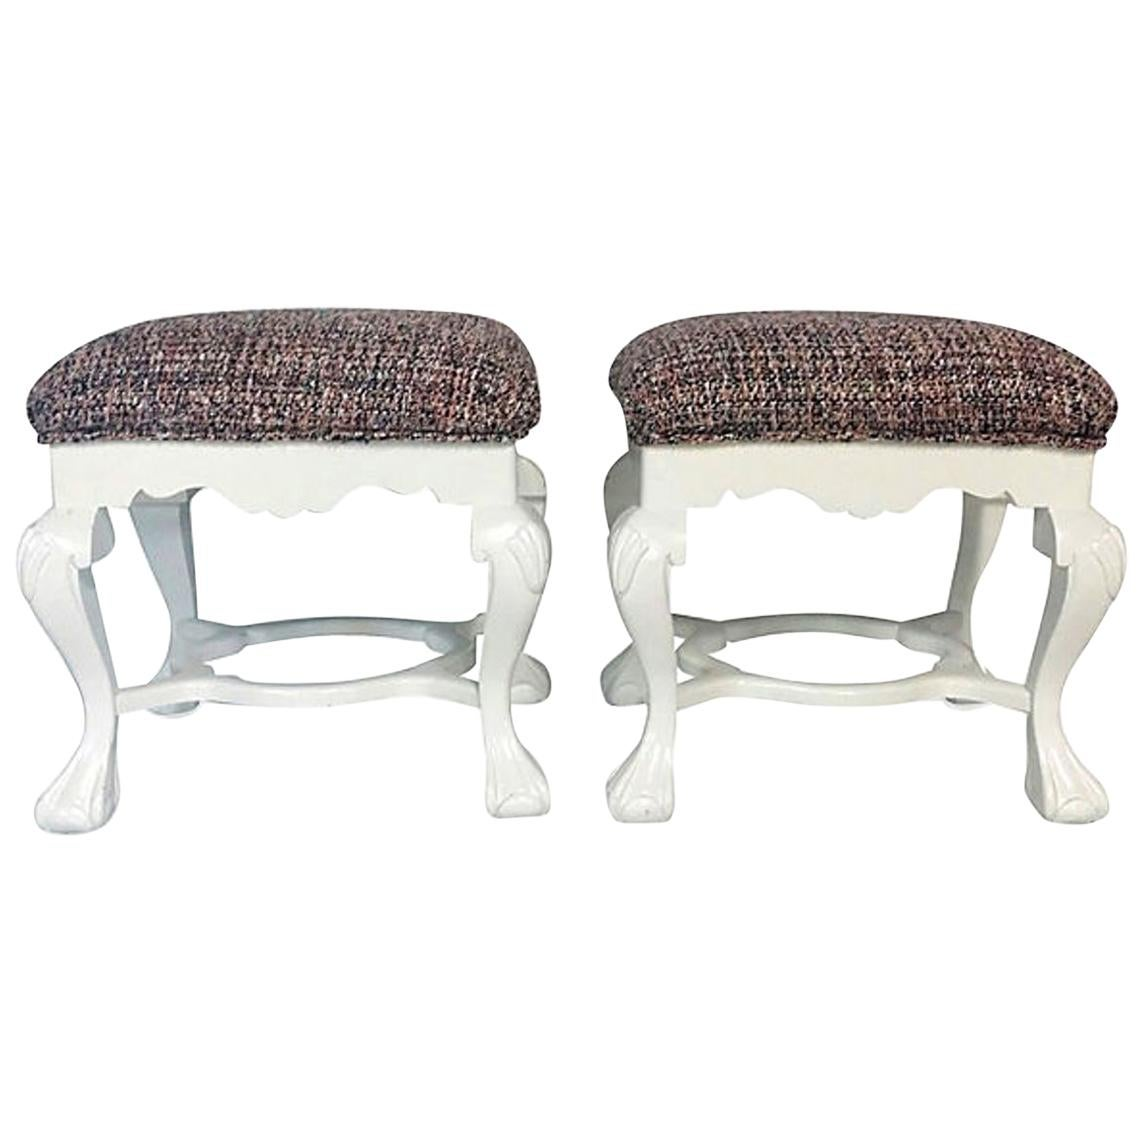 20th Century Pair of Queen Anne Style Mahogany Boucle Upholstered Benches